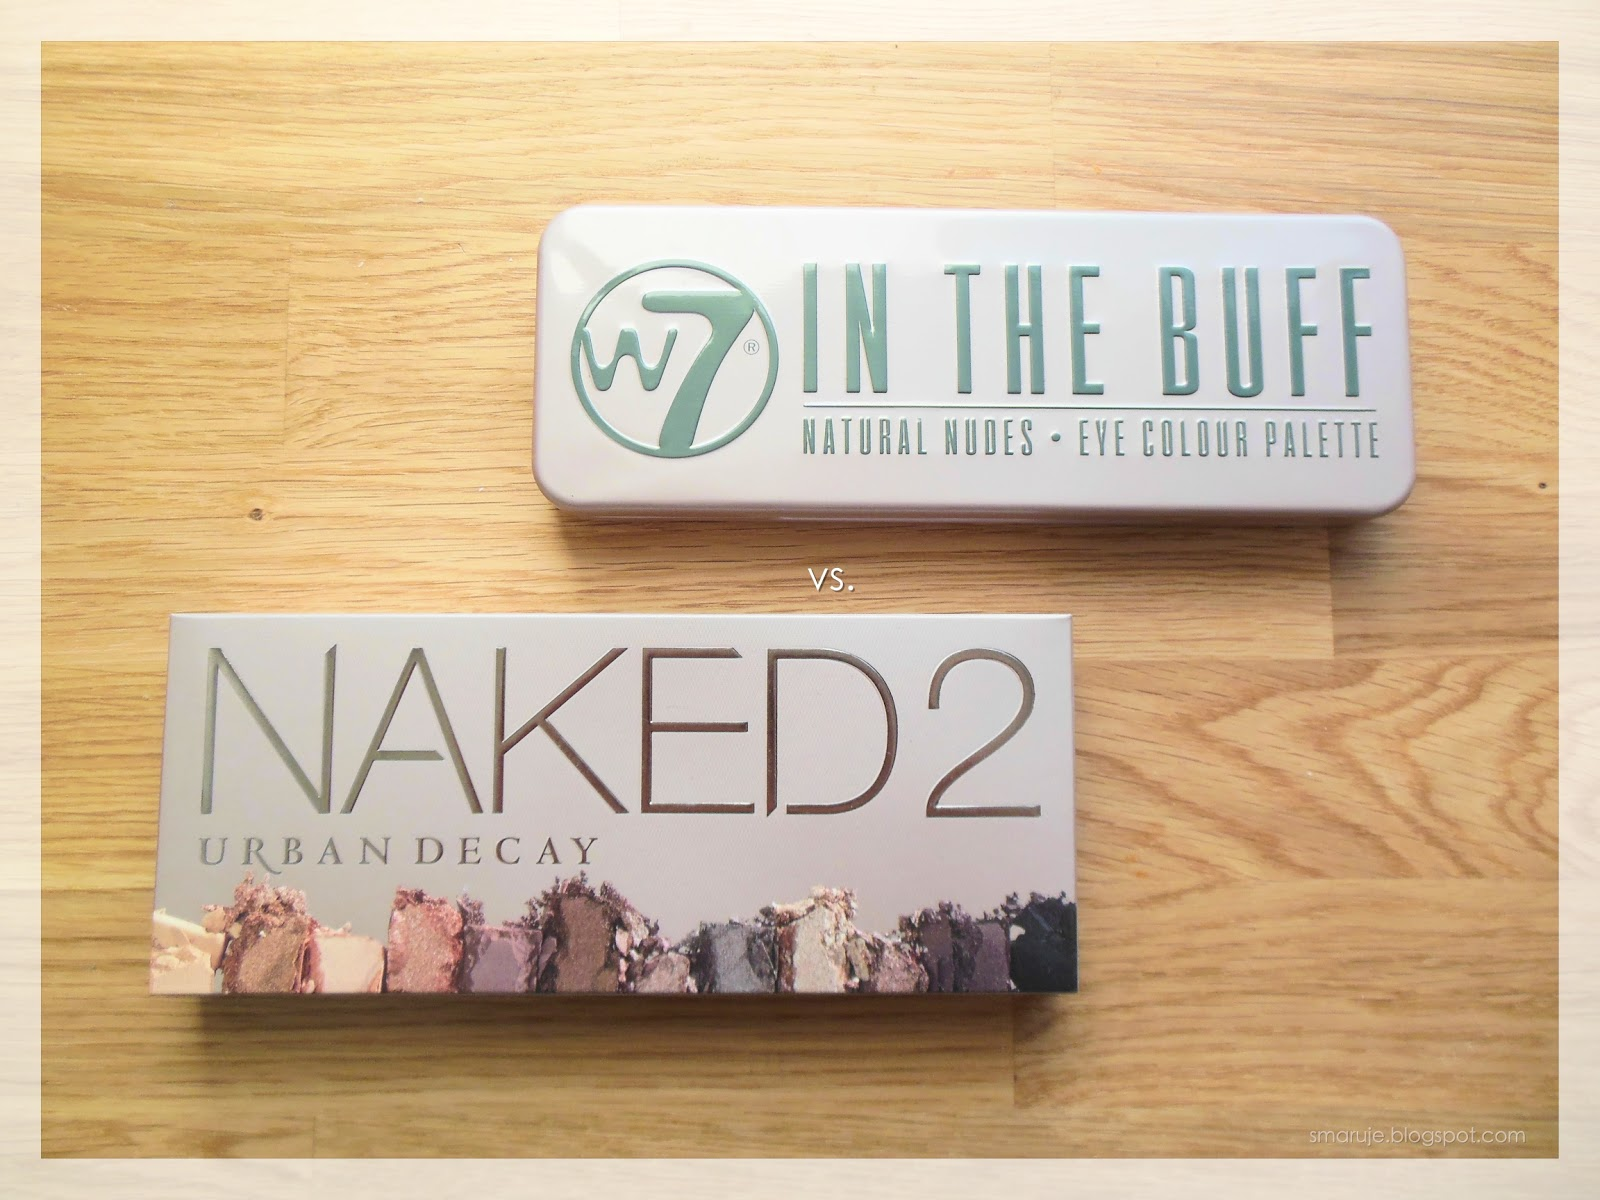 W7 In The Buff / Colour Me Buff vs. Urban Decay Naked 2